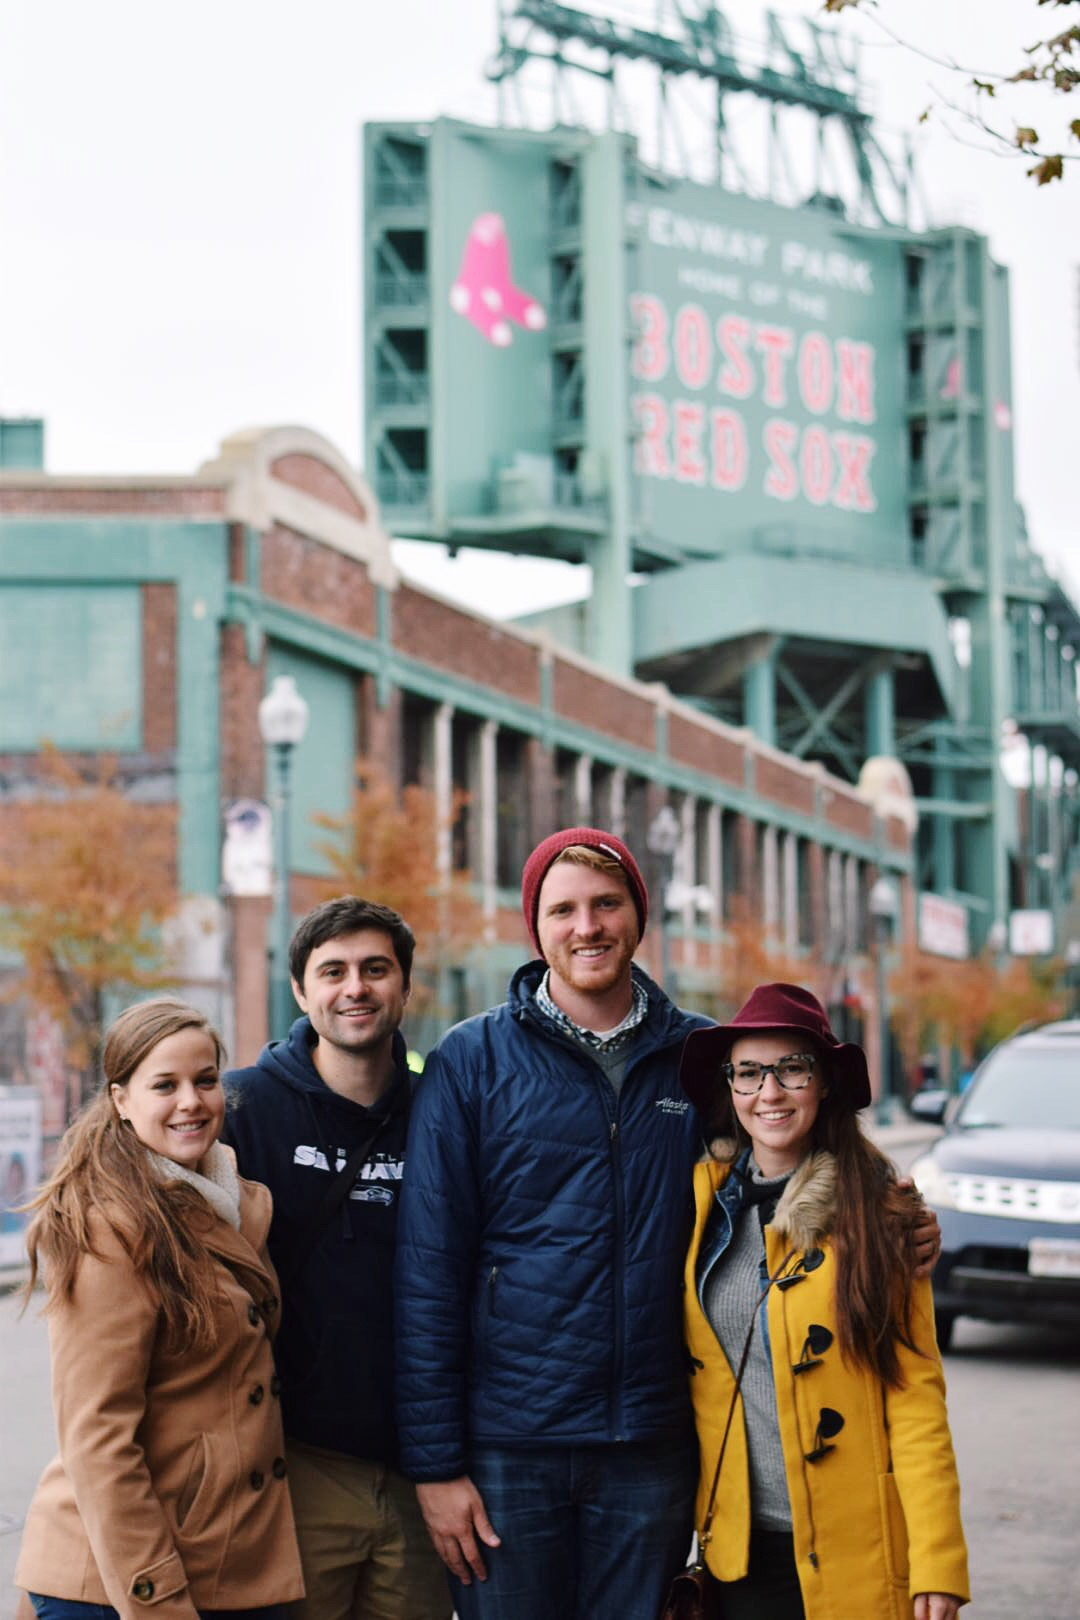 24 Hours in Boston